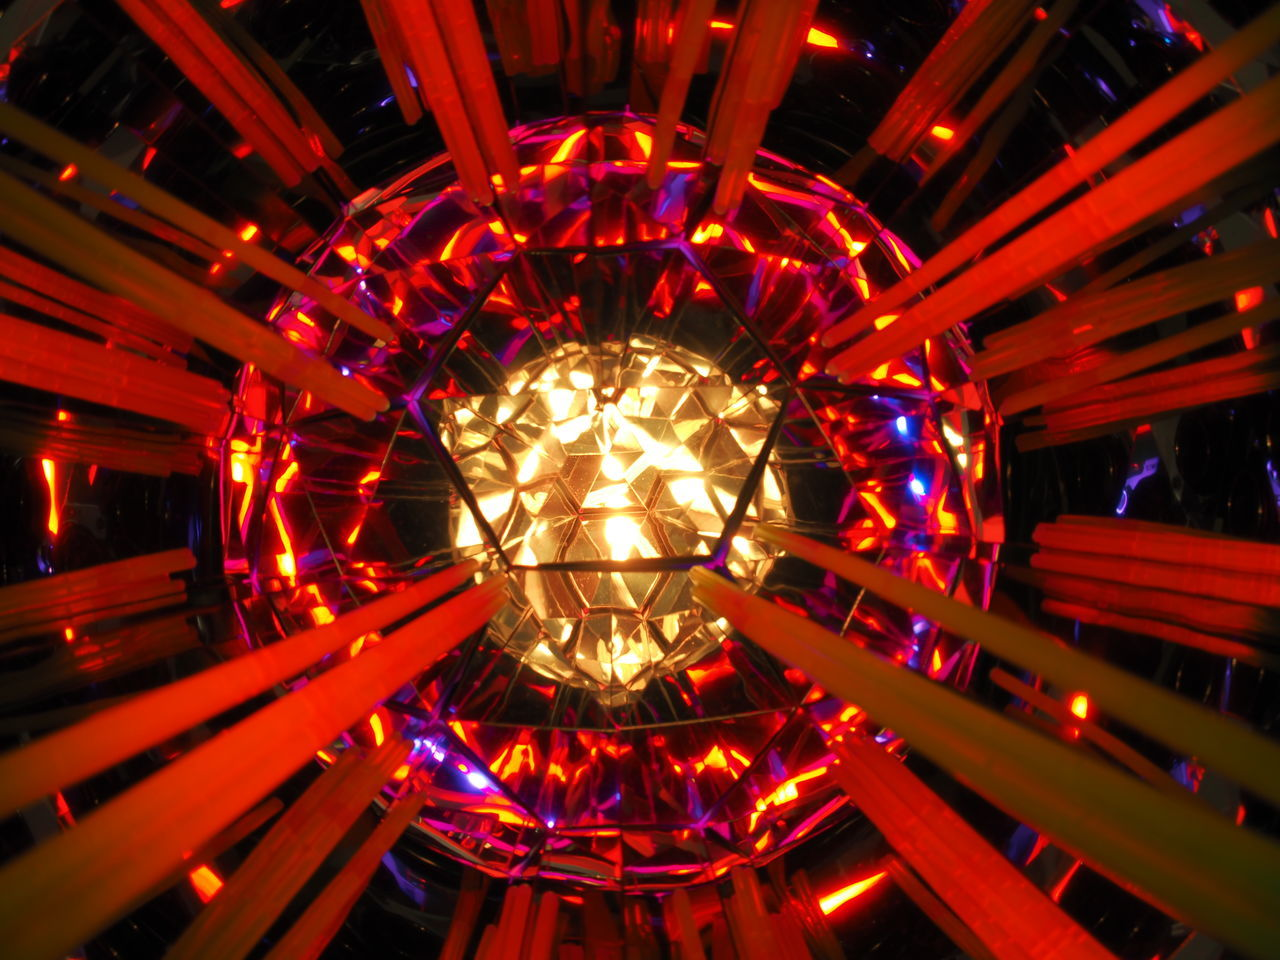 illuminated, lighting equipment, glowing, no people, night, low angle view, pattern, hanging, red, light, orange color, indoors, decoration, electricity, design, arts culture and entertainment, amusement park, electric light, amusement park ride, close-up, ceiling, directly below, electric lamp